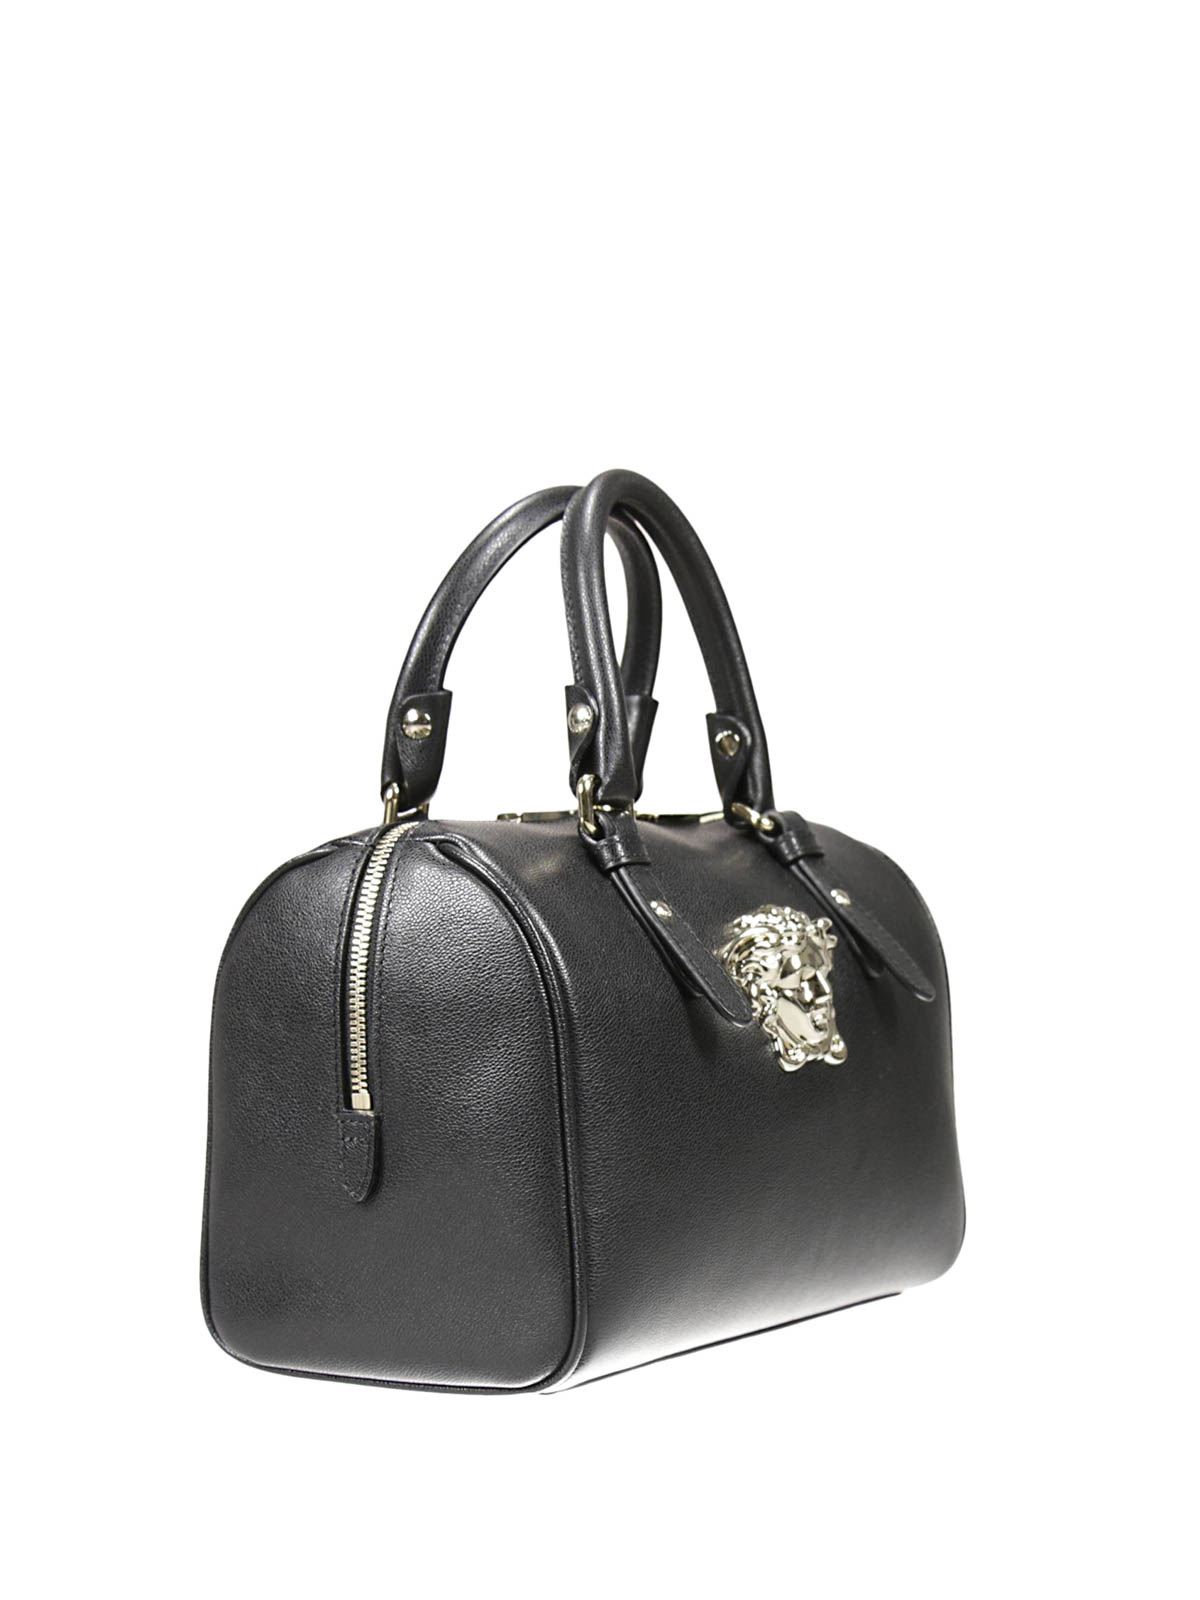 ... Women Palazzo Duffle Bag White O8d6609  super popular 4cf0d 79633  VERSACE bowling bags online - Palazzo bowling bag with Medusa ... f0d0ffe282c19